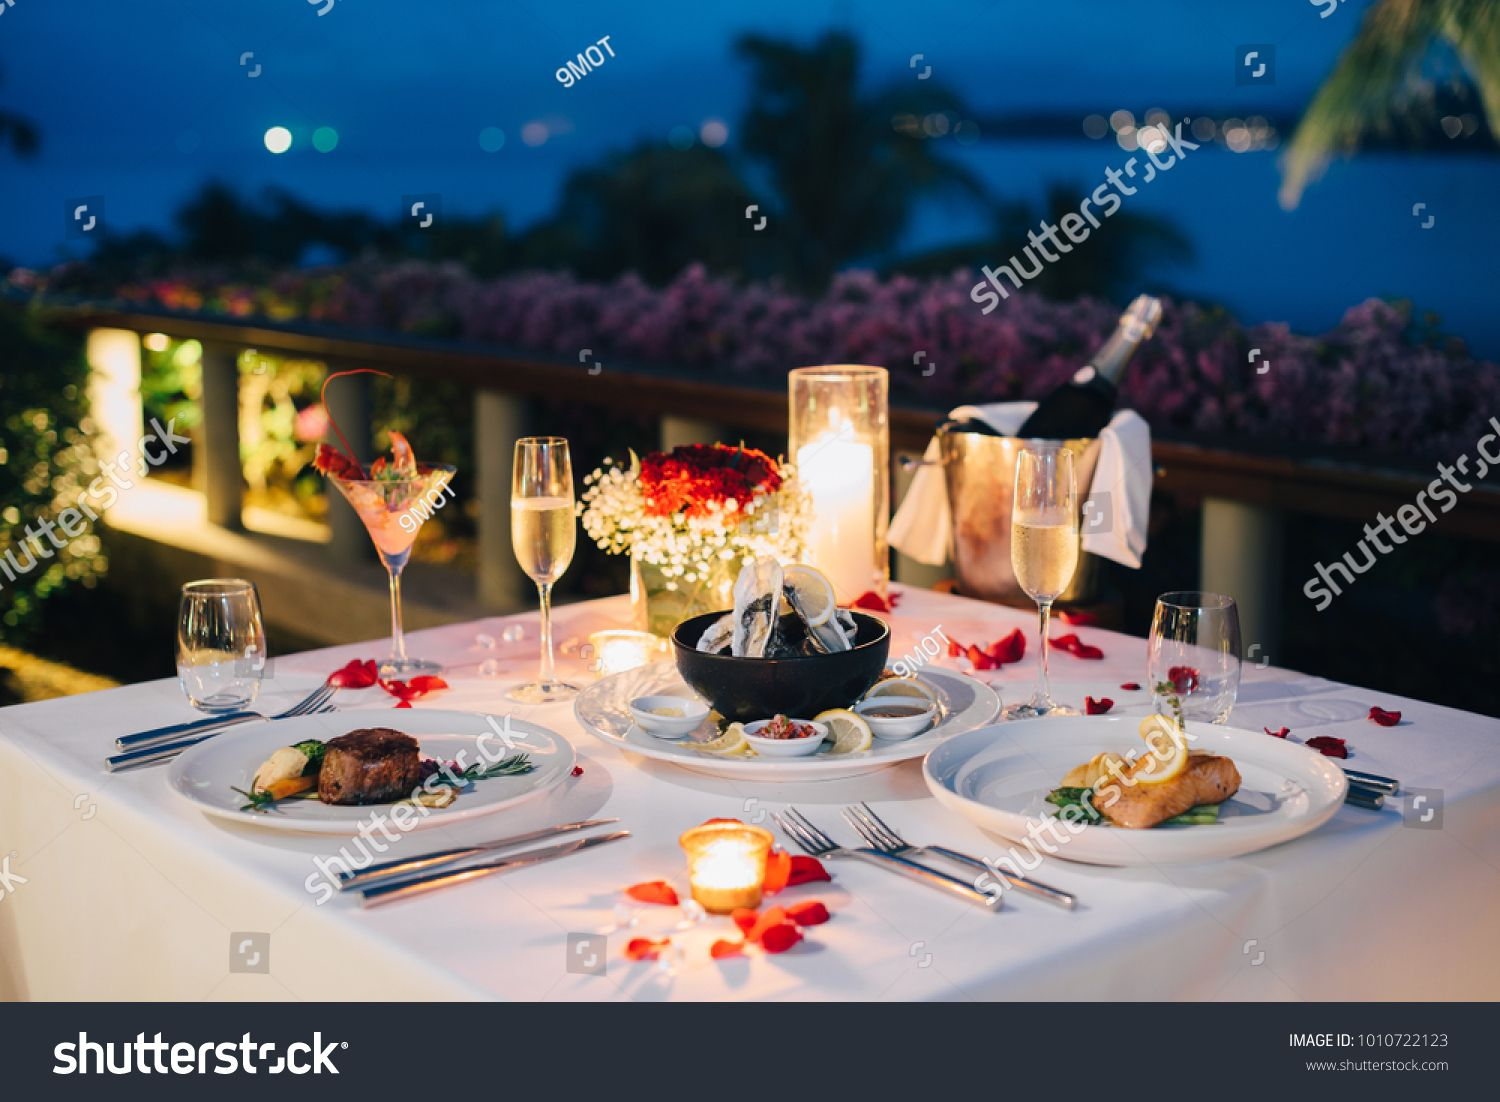 Luxury Romantic Candlelight Dinner Table Setup For Couple In Ocean View Restaurant O In 2020 Candle Light Dinner Romantic Candle Light Dinner Candle Light Dinner Ideas